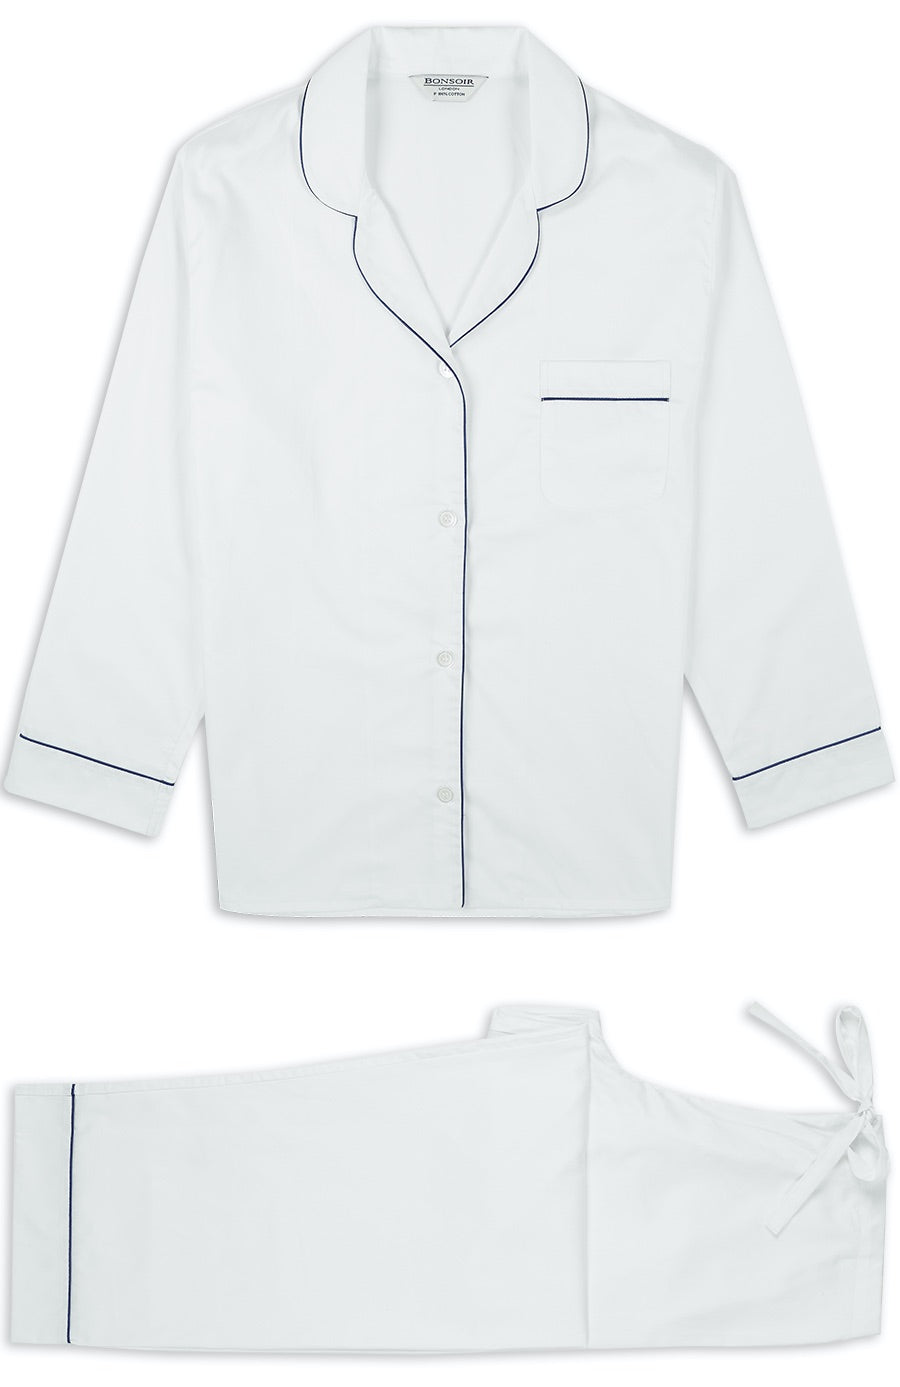 Women's Classic Cotton White Sateen Pyjamas | Bonsoir of London